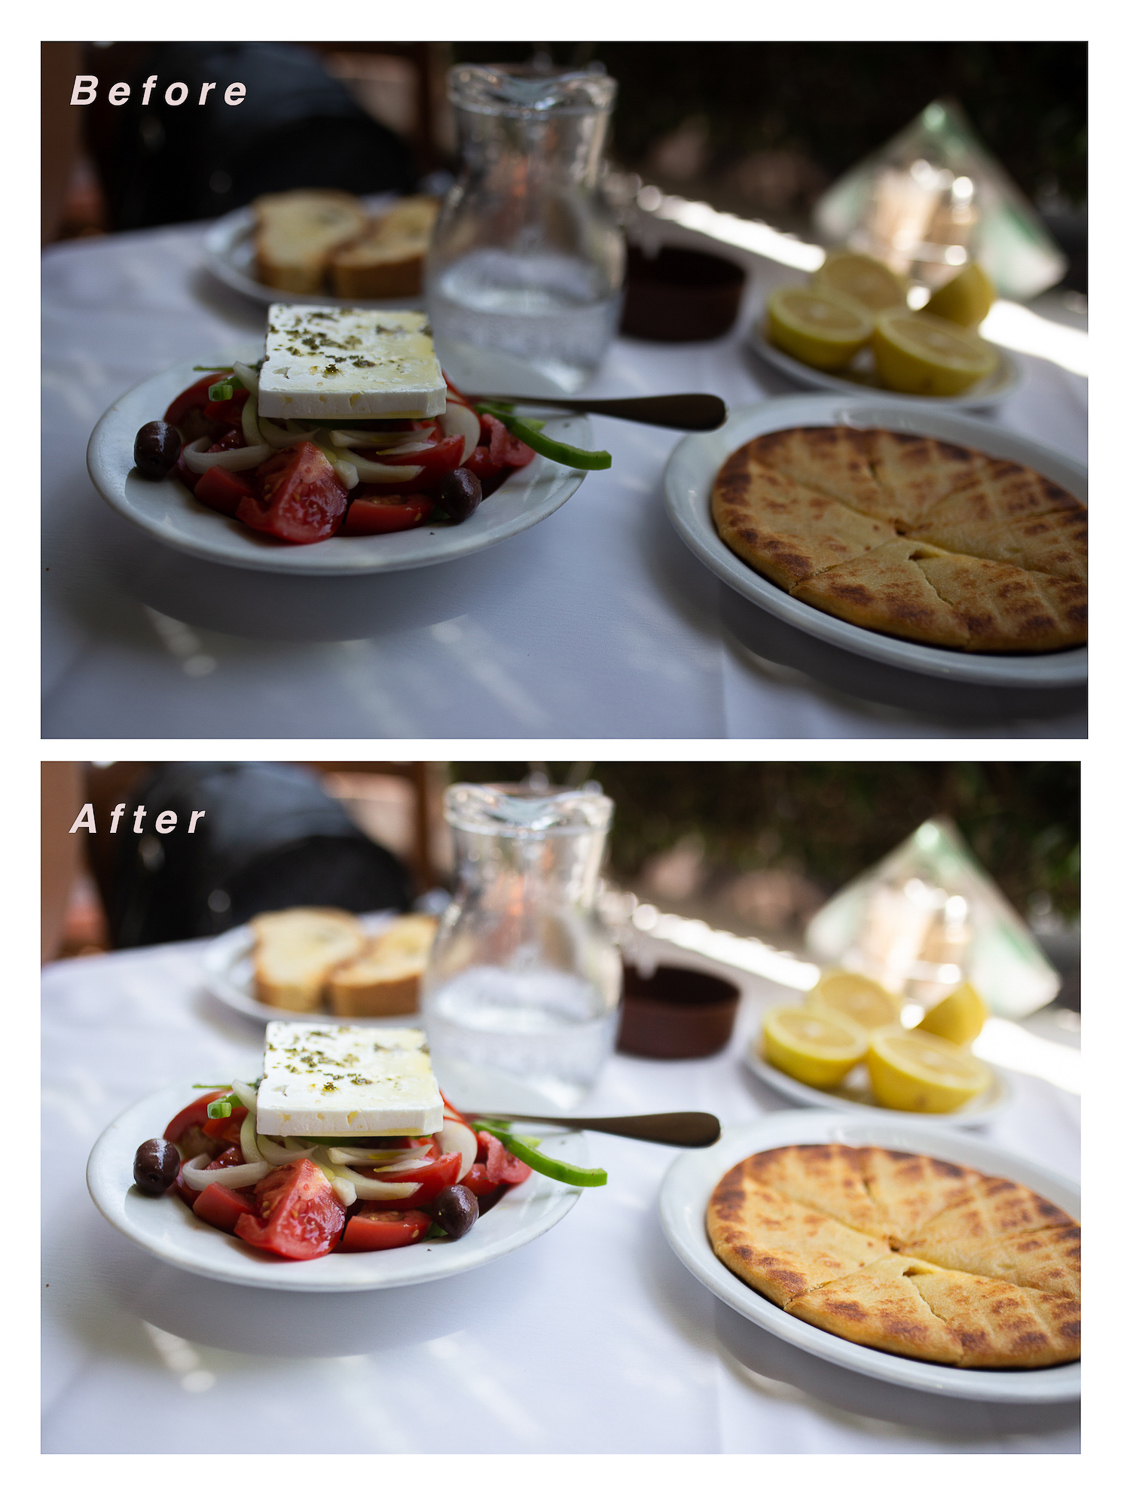 How to Achieve a Consistent and Clean Photo Editing Style - Focus on Lighting example 03